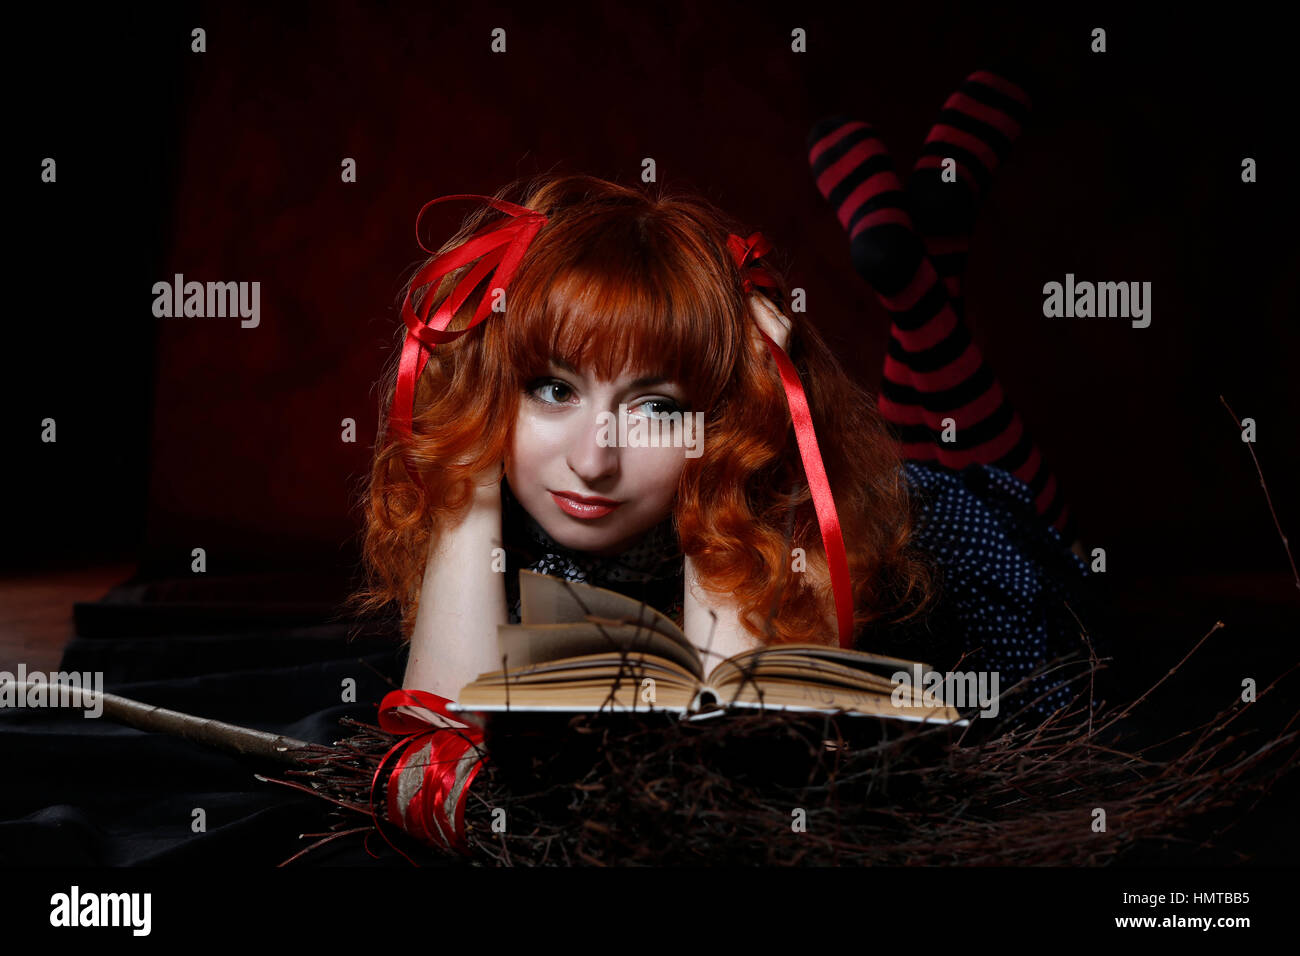 Witch Computer Stockfotos & Witch Computer Bilder - Alamy